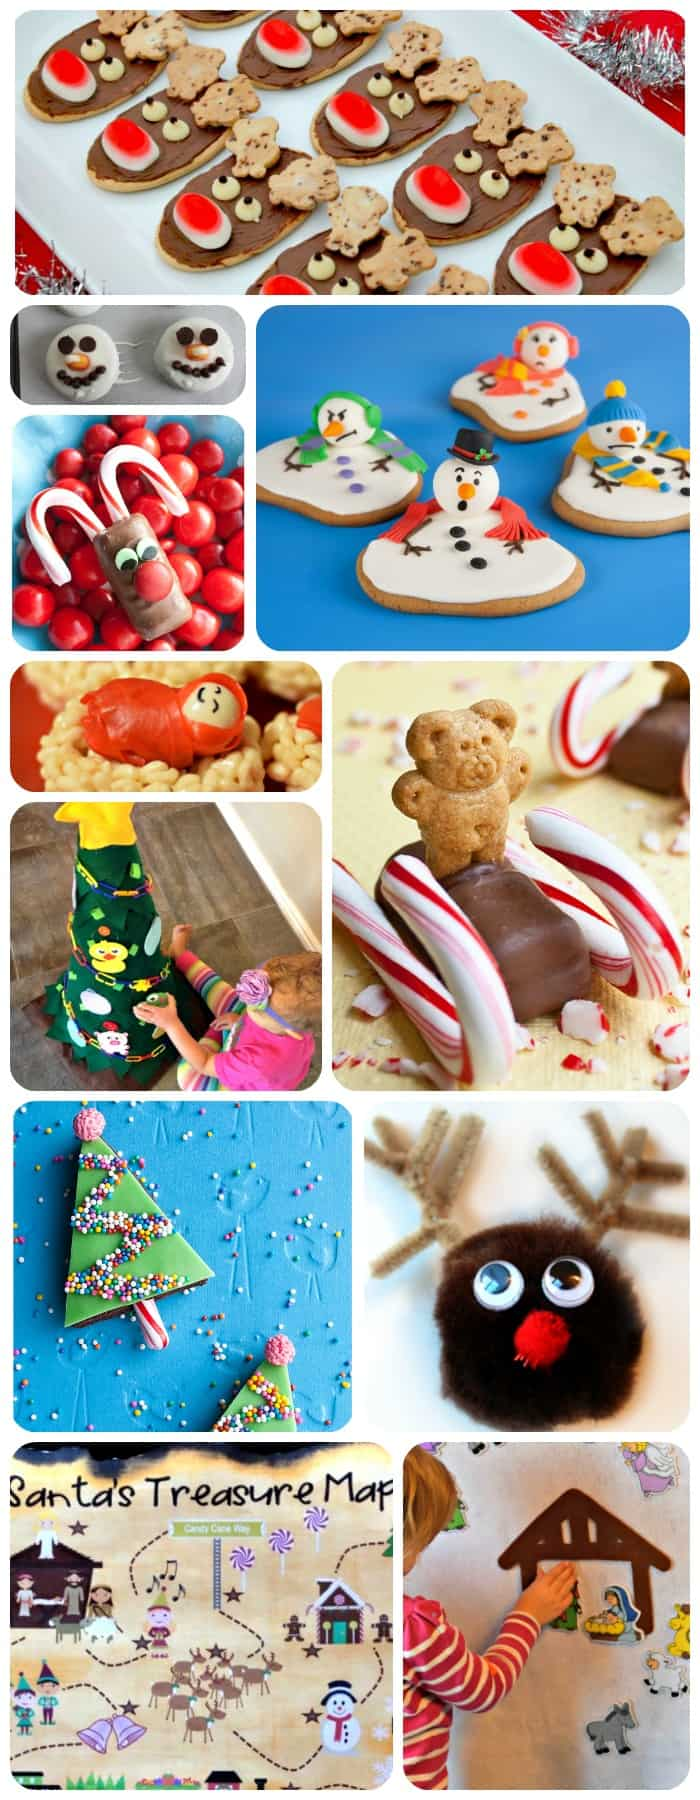 TONS of ideas for the KIDS this holiday season! Fun Christmas crafts and treats!